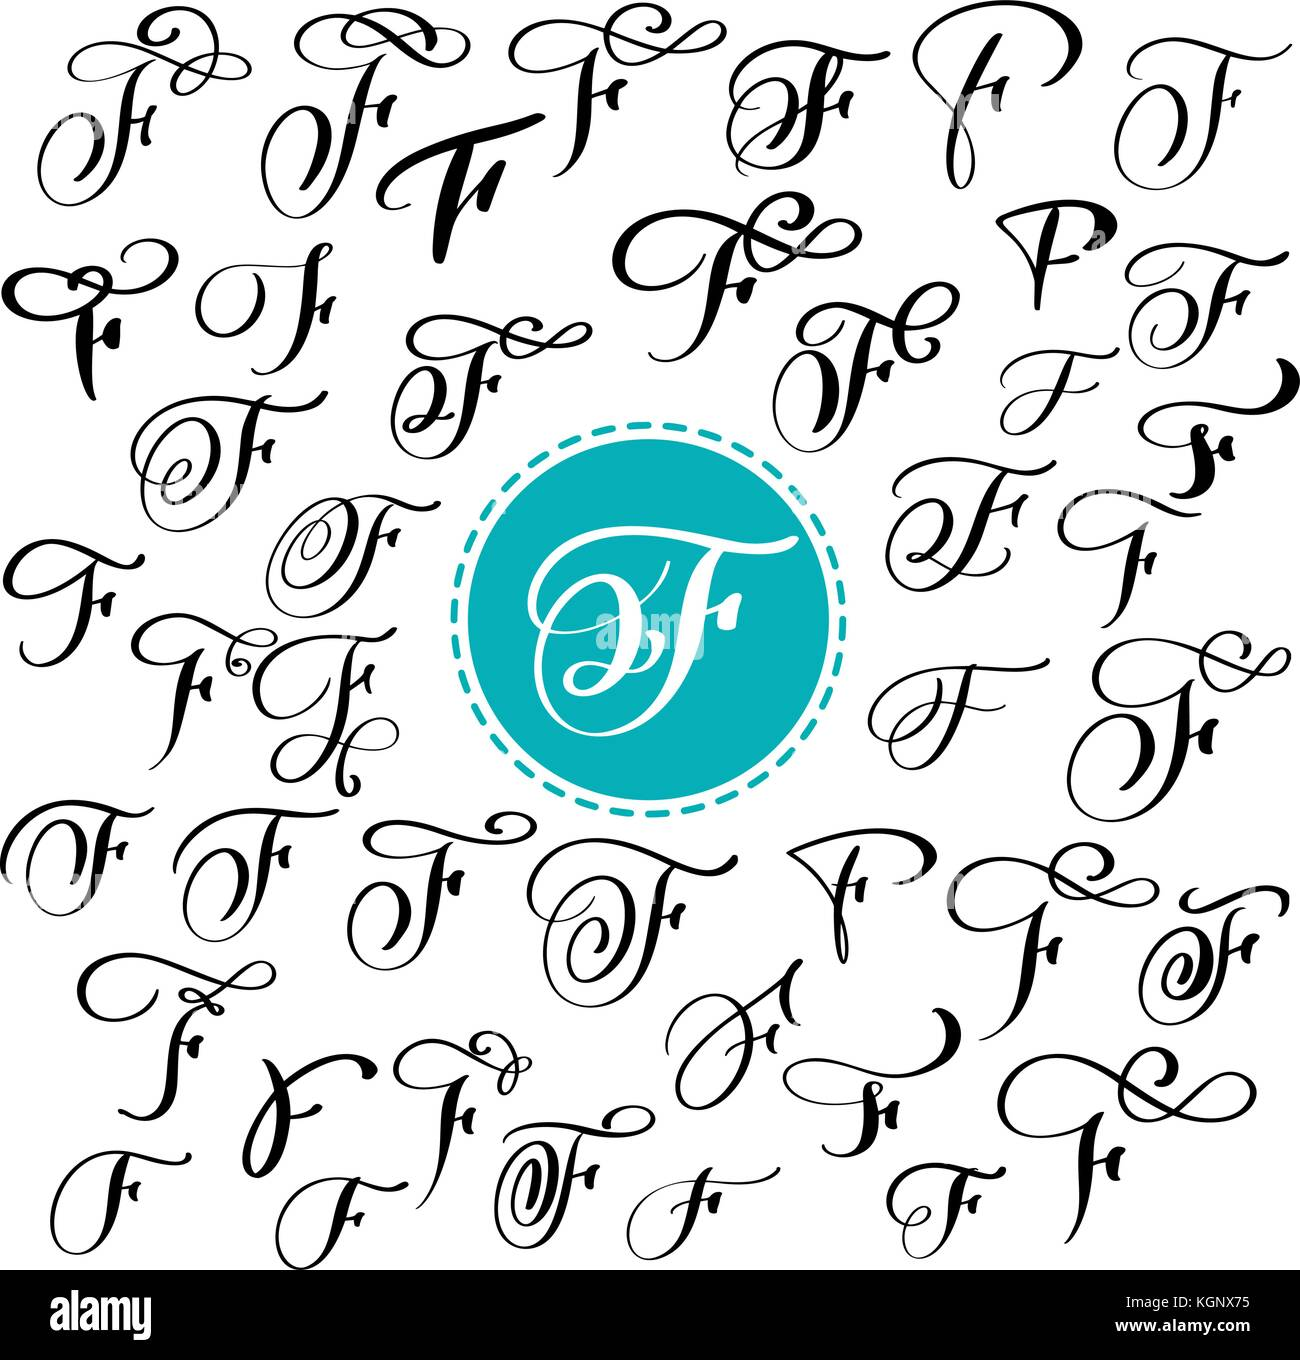 Set Of Hand Drawn Vector Calligraphy Letter F Script Font Isolated Letters Written With Ink Handwritten Brush Style Lettering For Logos Packaging